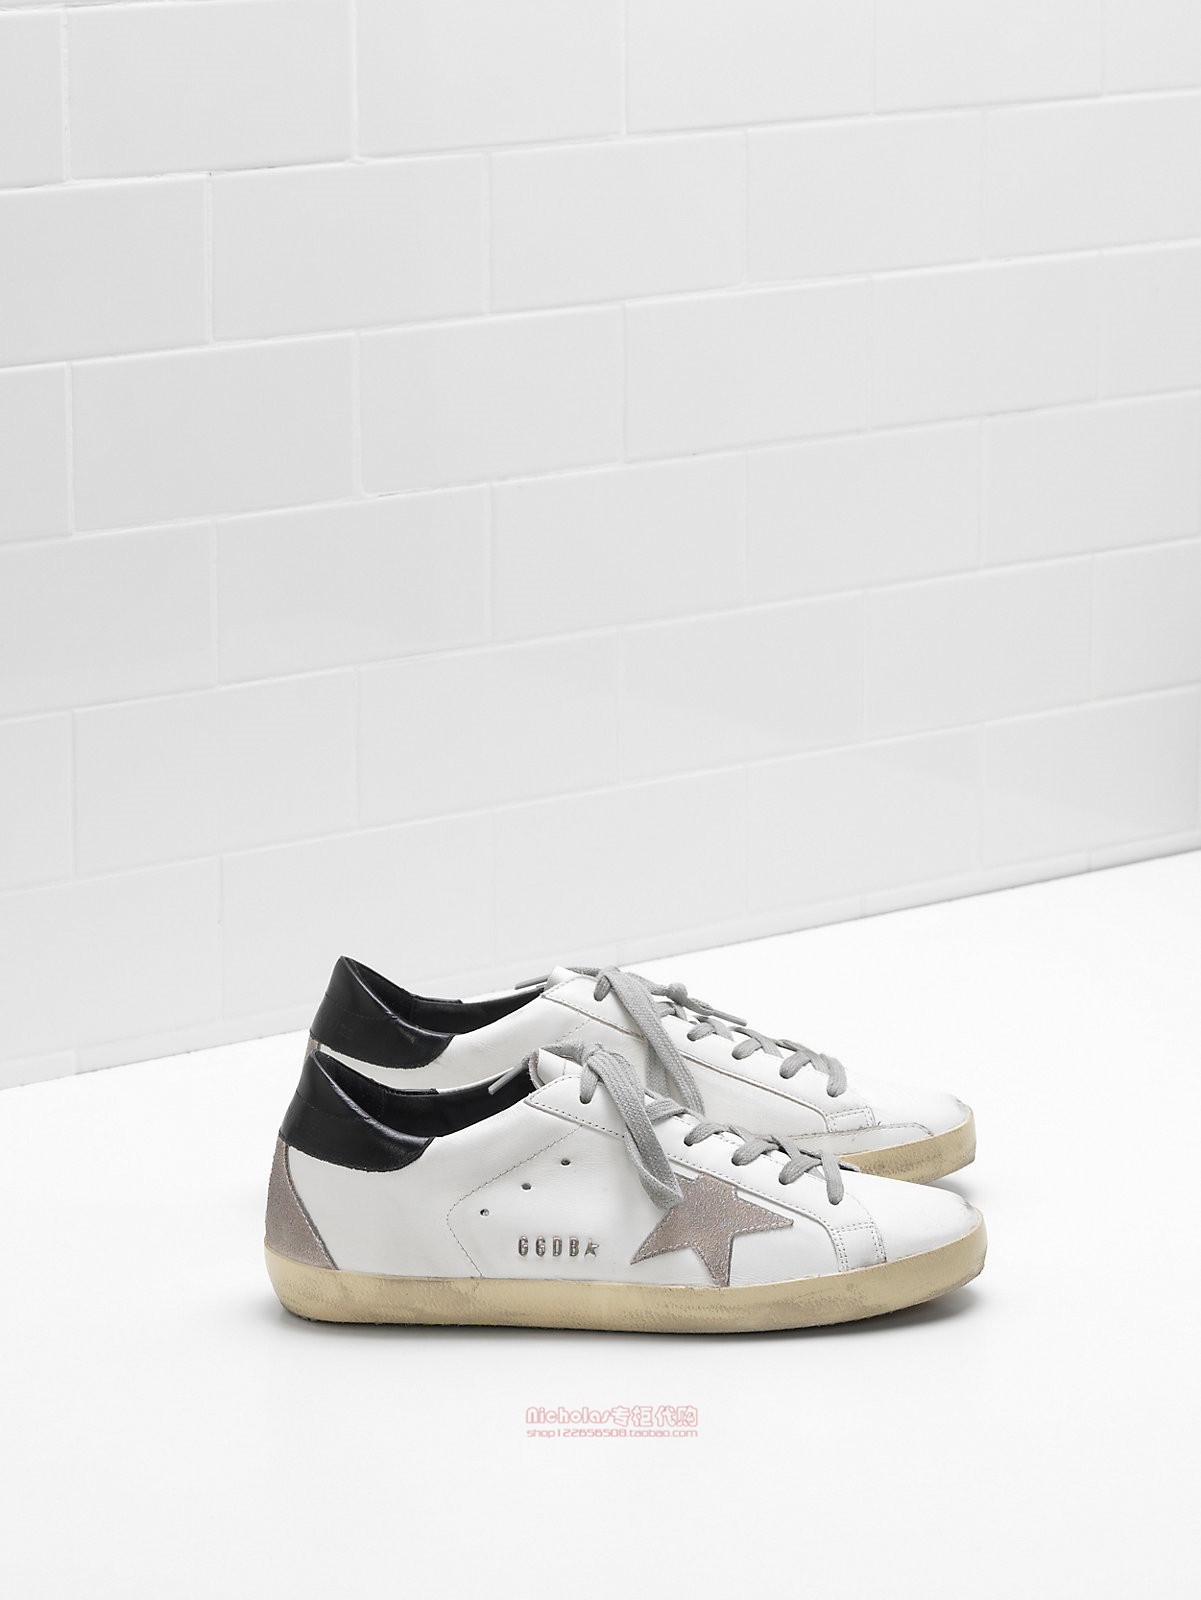 Achats authentiques Golden Goose Silver Tail Gris  classic Star GGDB classic  8ab004